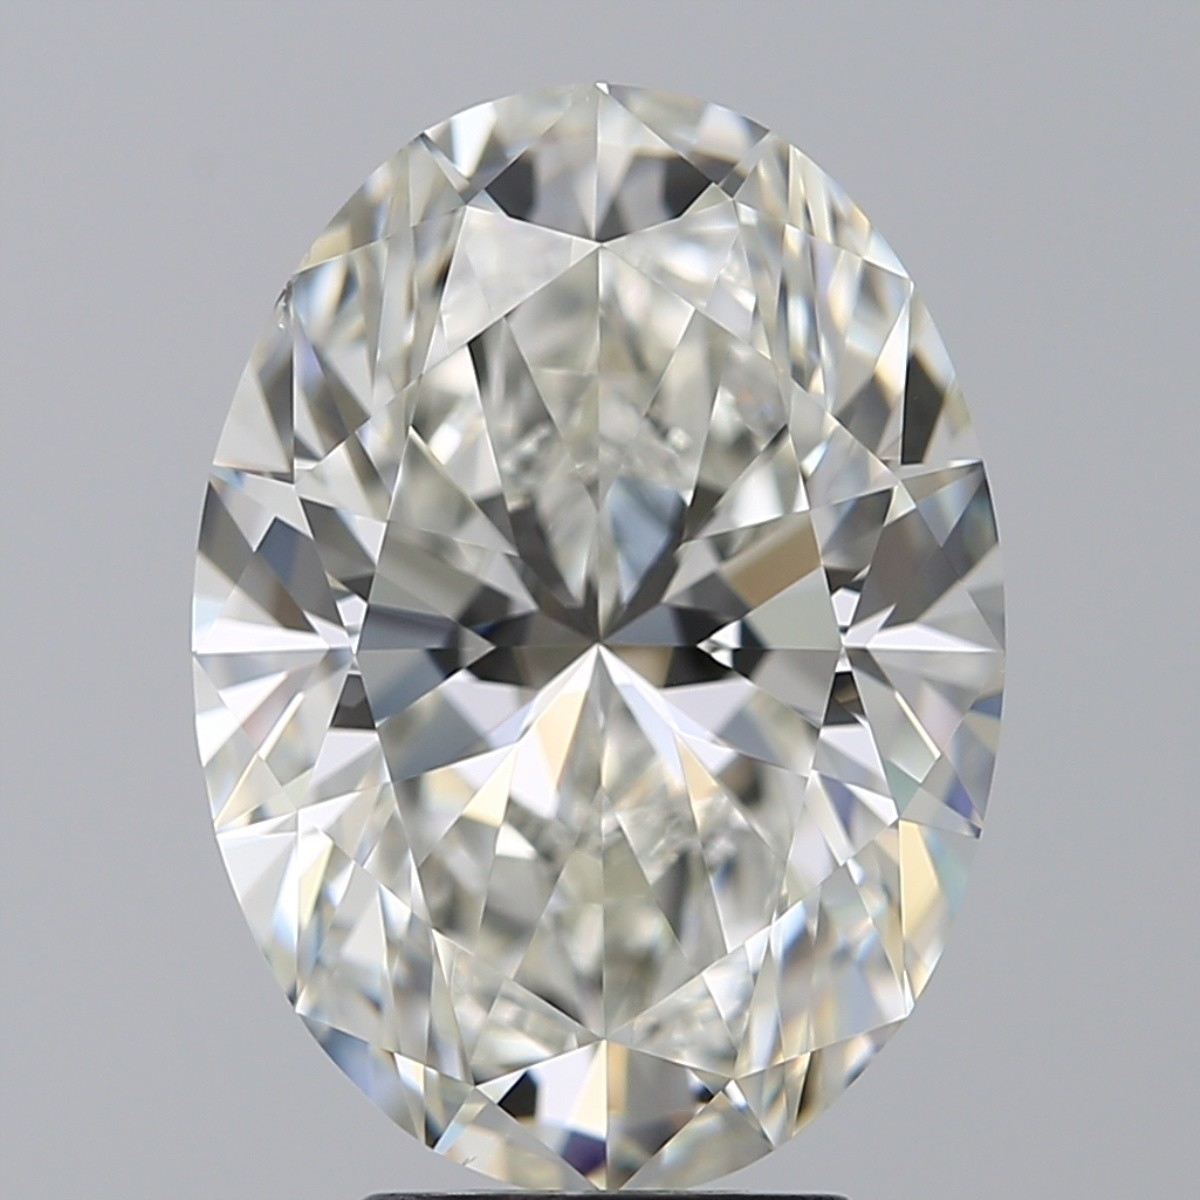 4.03 Carat Oval Diamond (H/VS1)